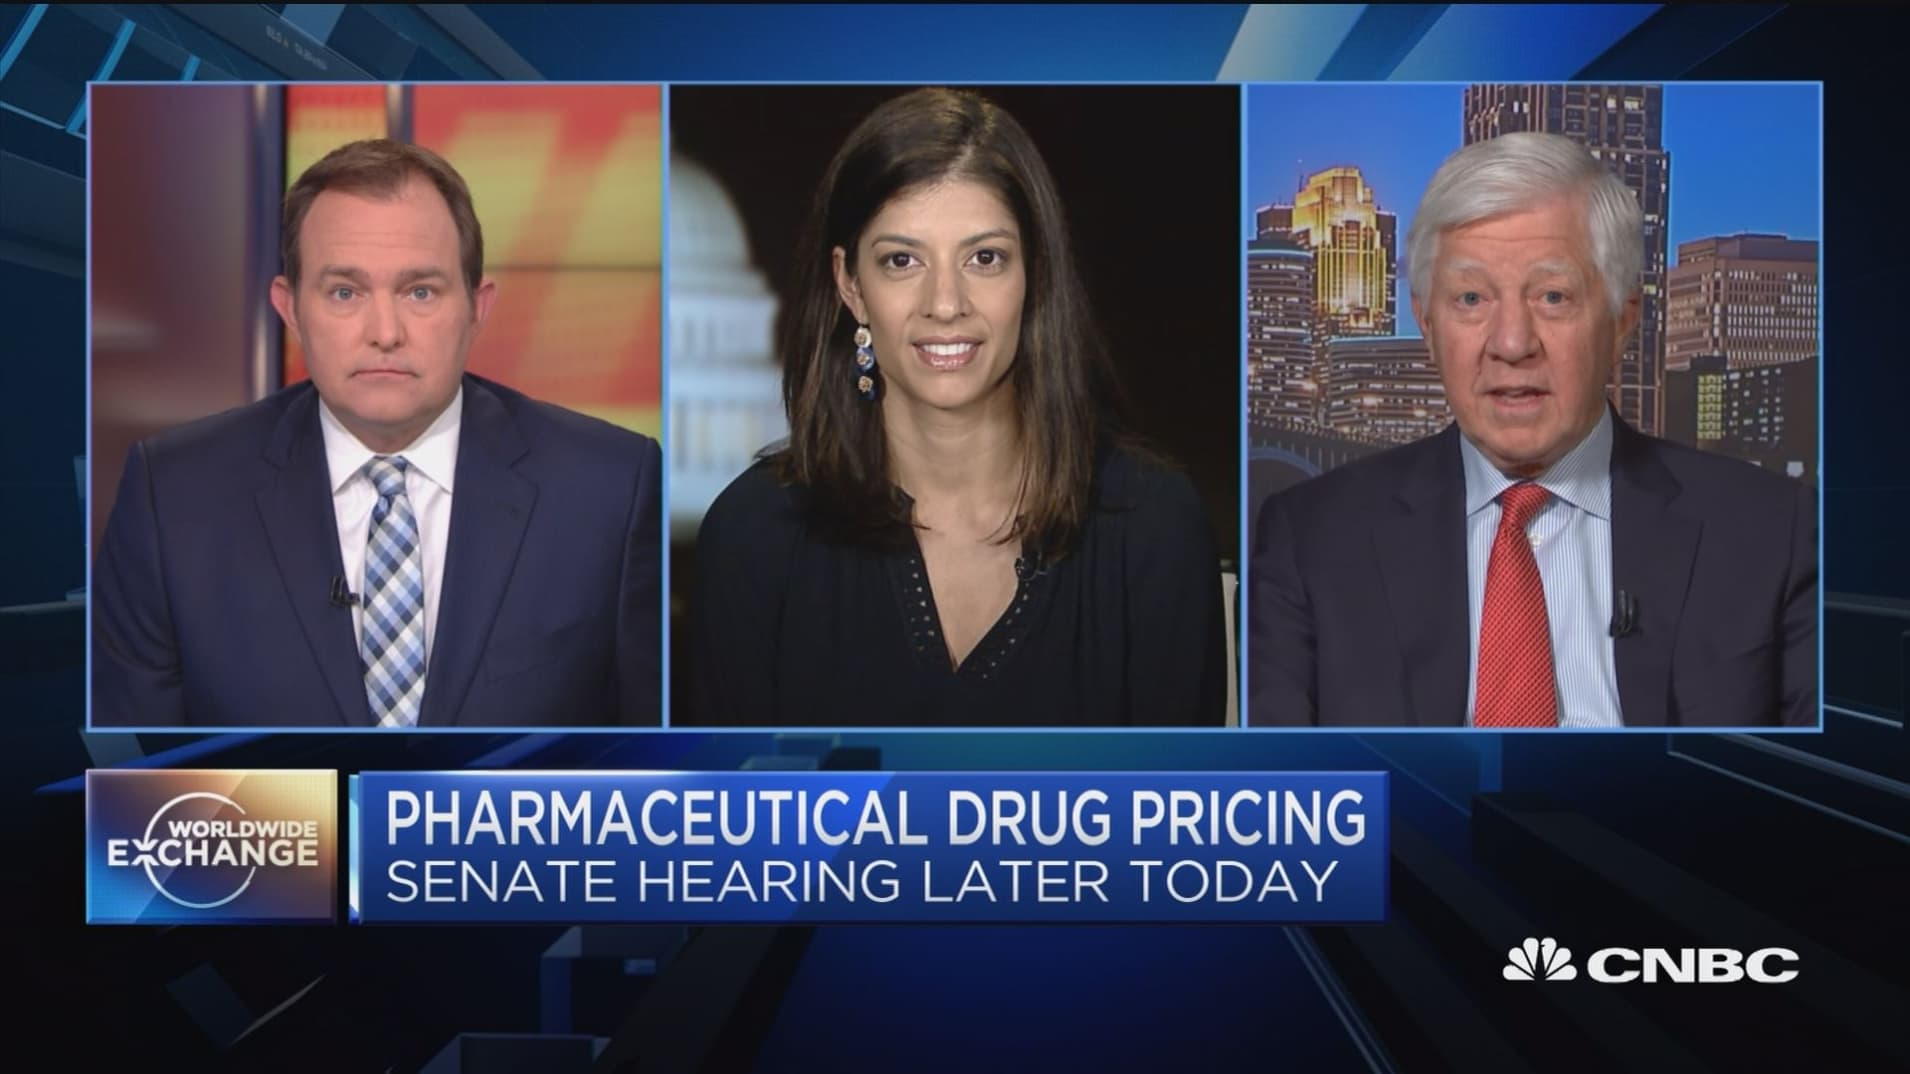 Expect a fiery hearing on Capitol Hill today over the role of pharmacy middle men in drug pricing